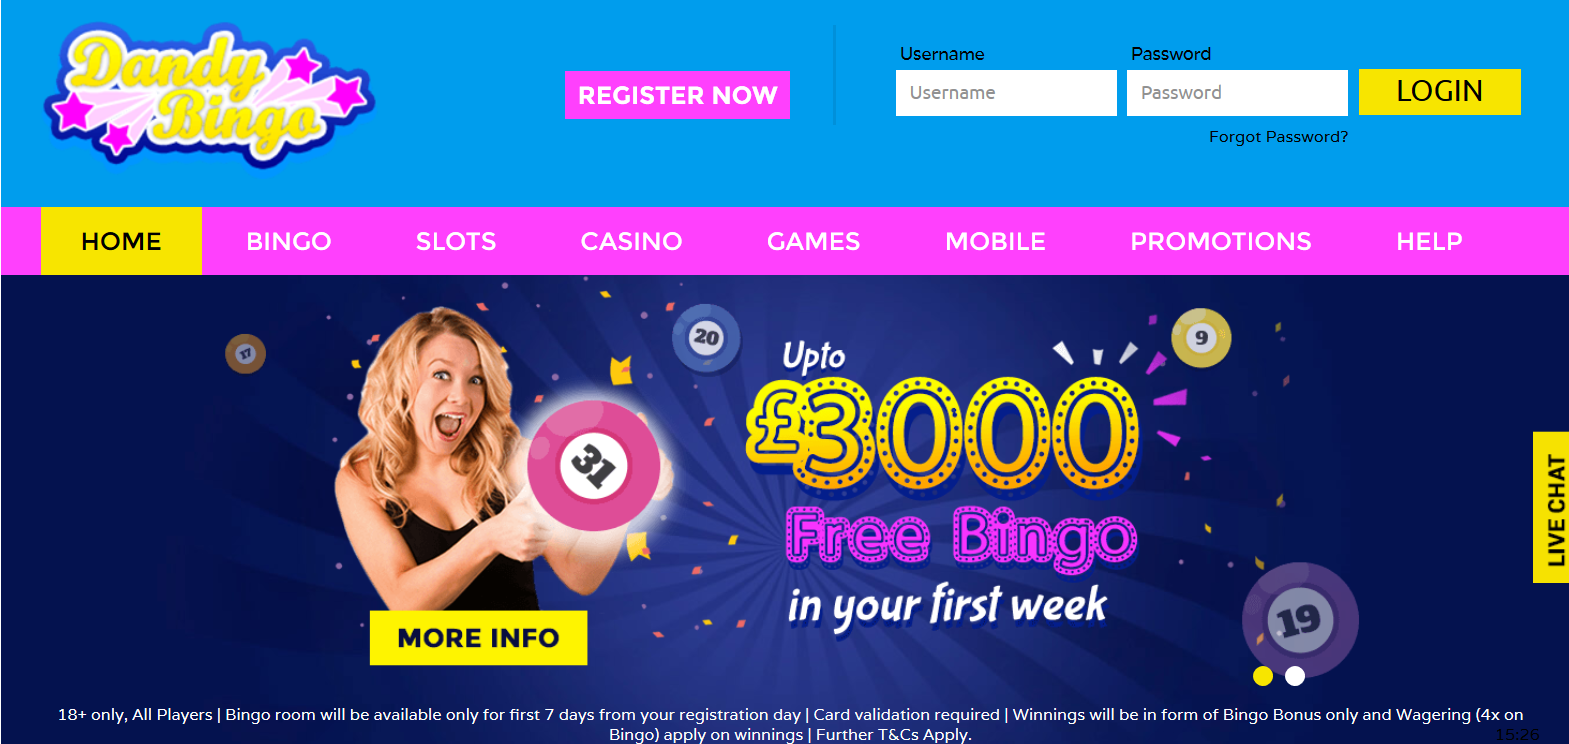 UK Bingo and Casino Games - Dandy Bingo